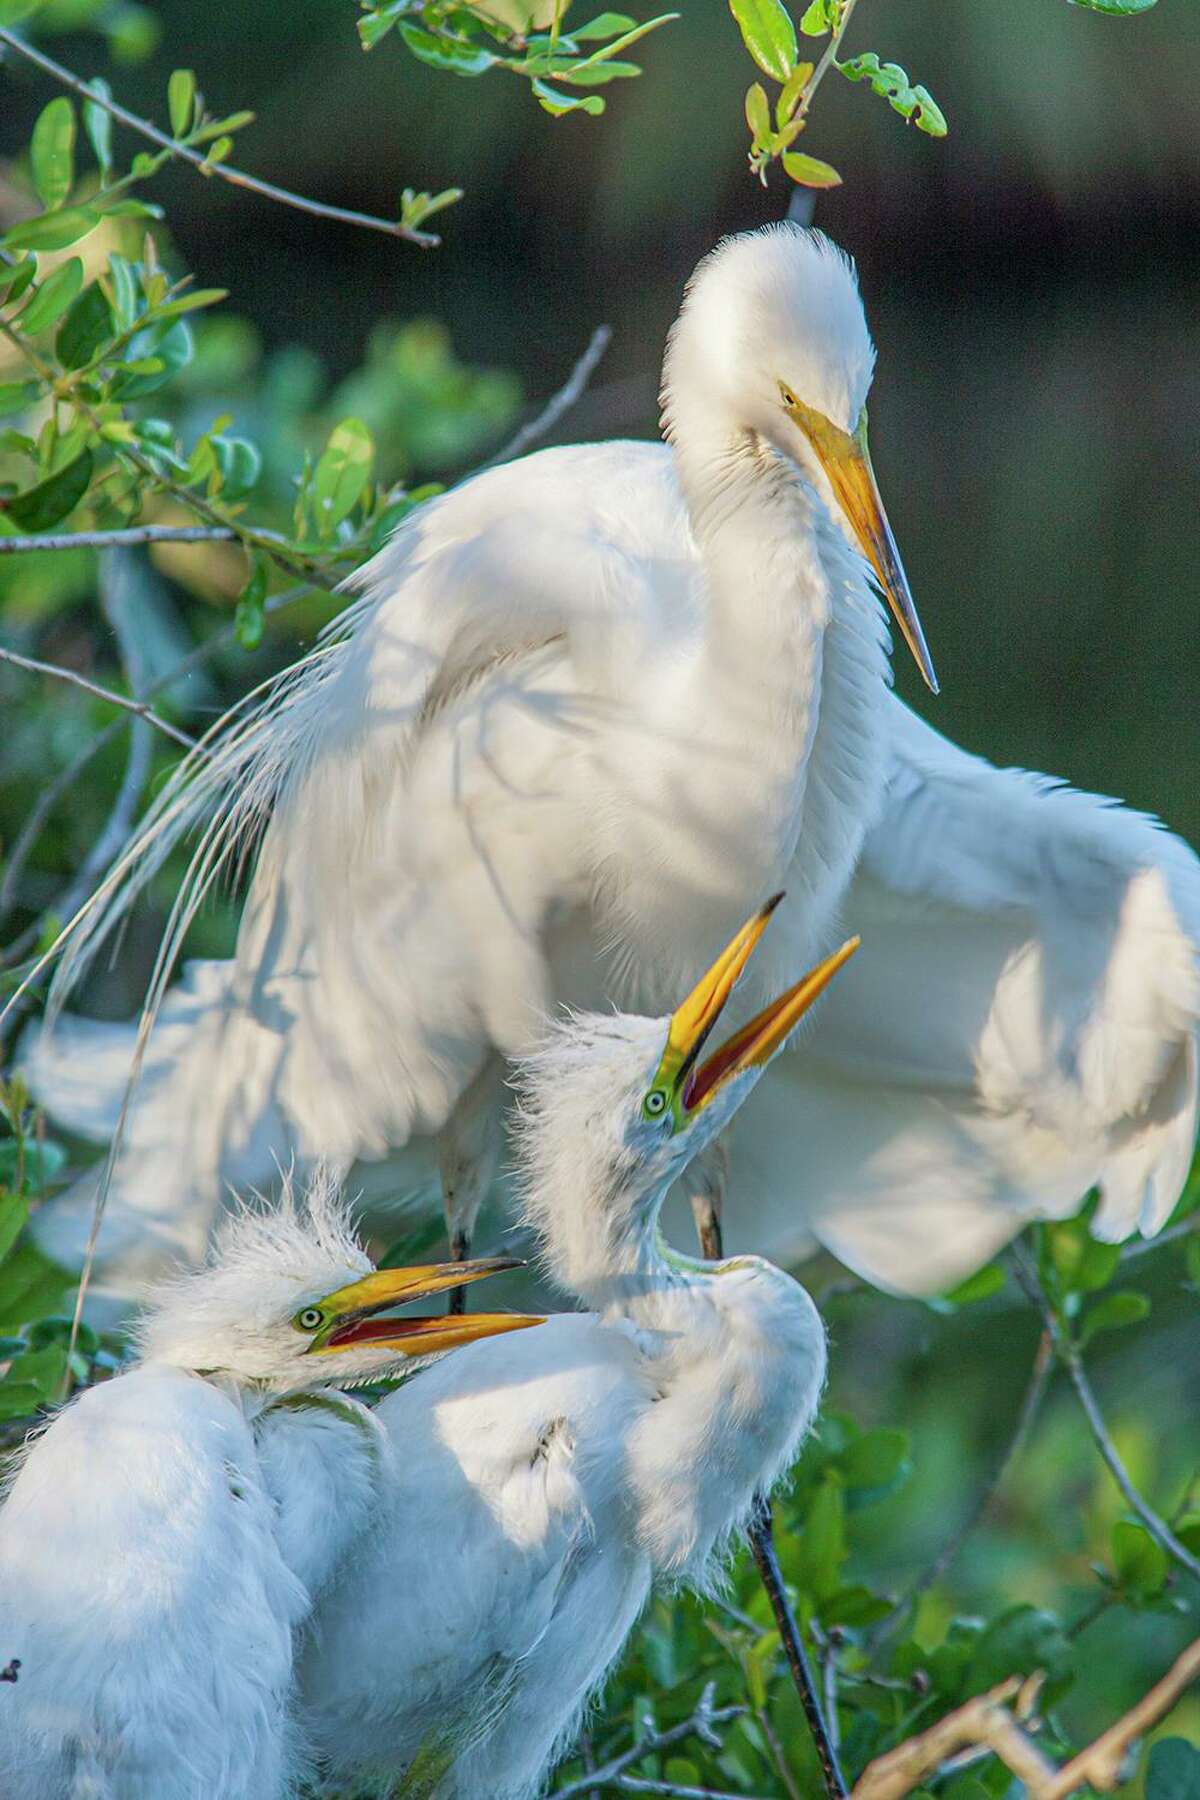 Female birds, like this great egret, work hard spring through summer to raise their young. Photo Credit: Kathy Adams Clark Restricted use.